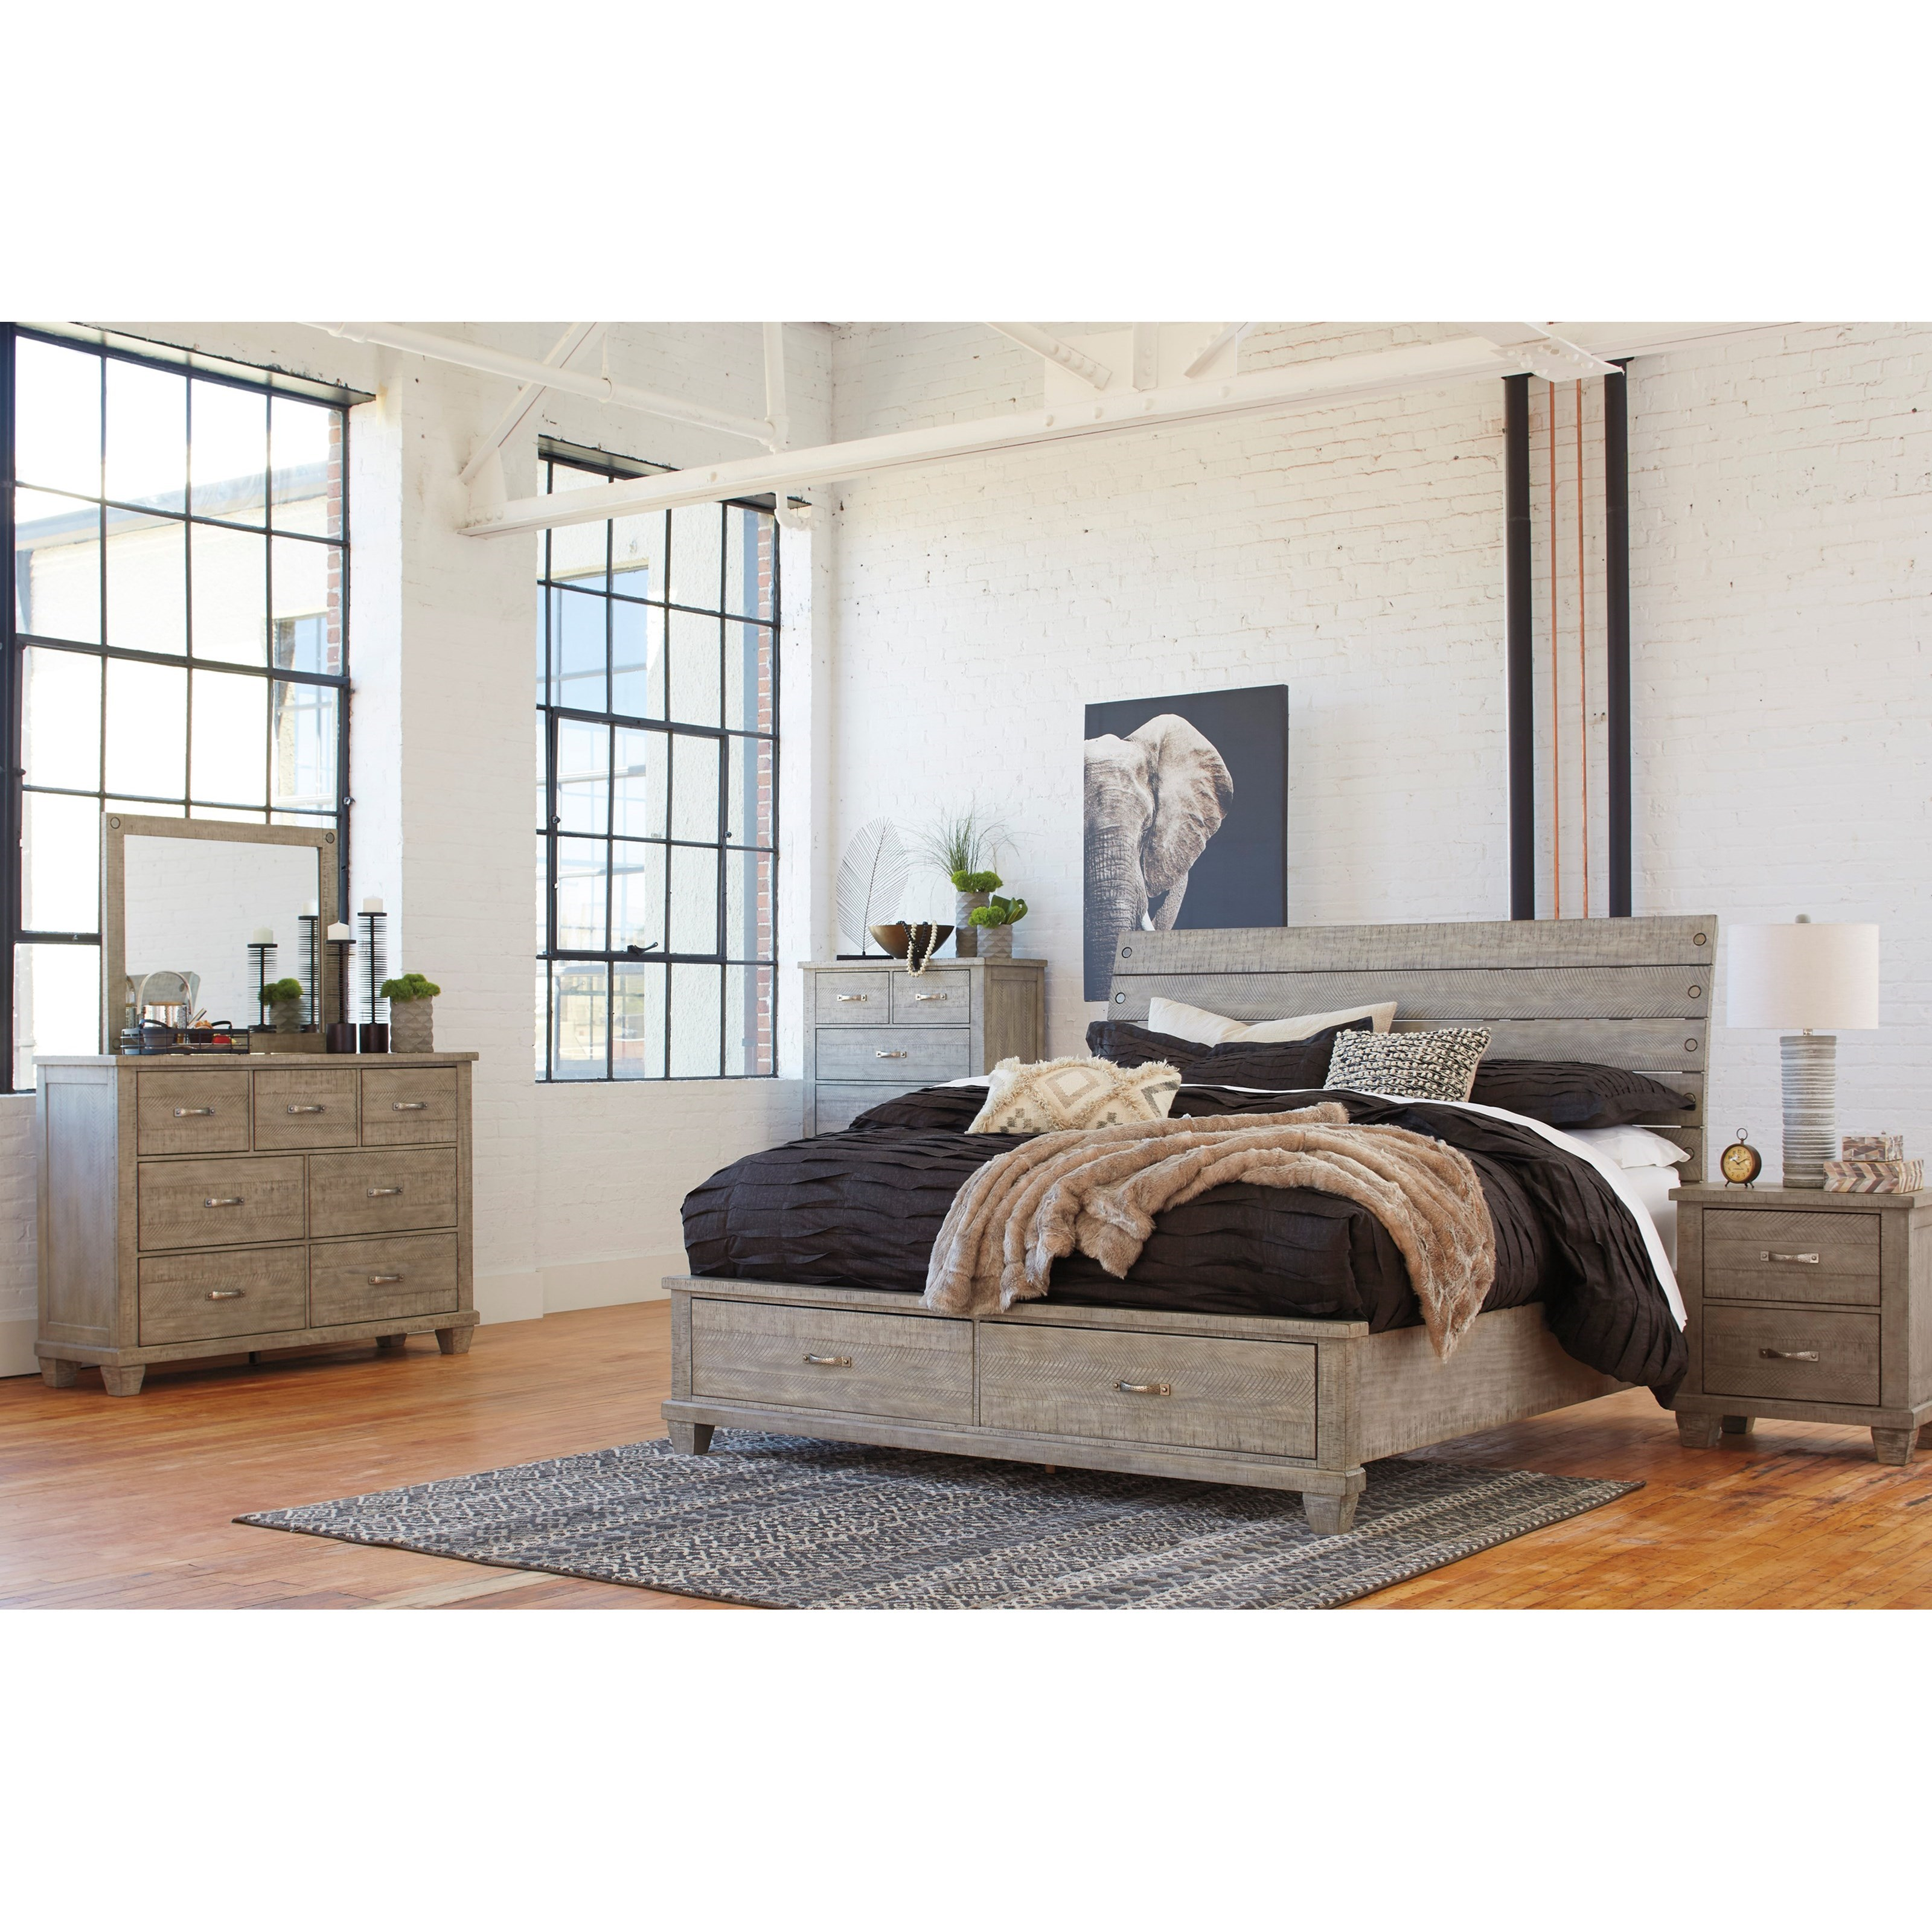 Naydell Queen Bedroom Group by Benchcraft at Value City Furniture